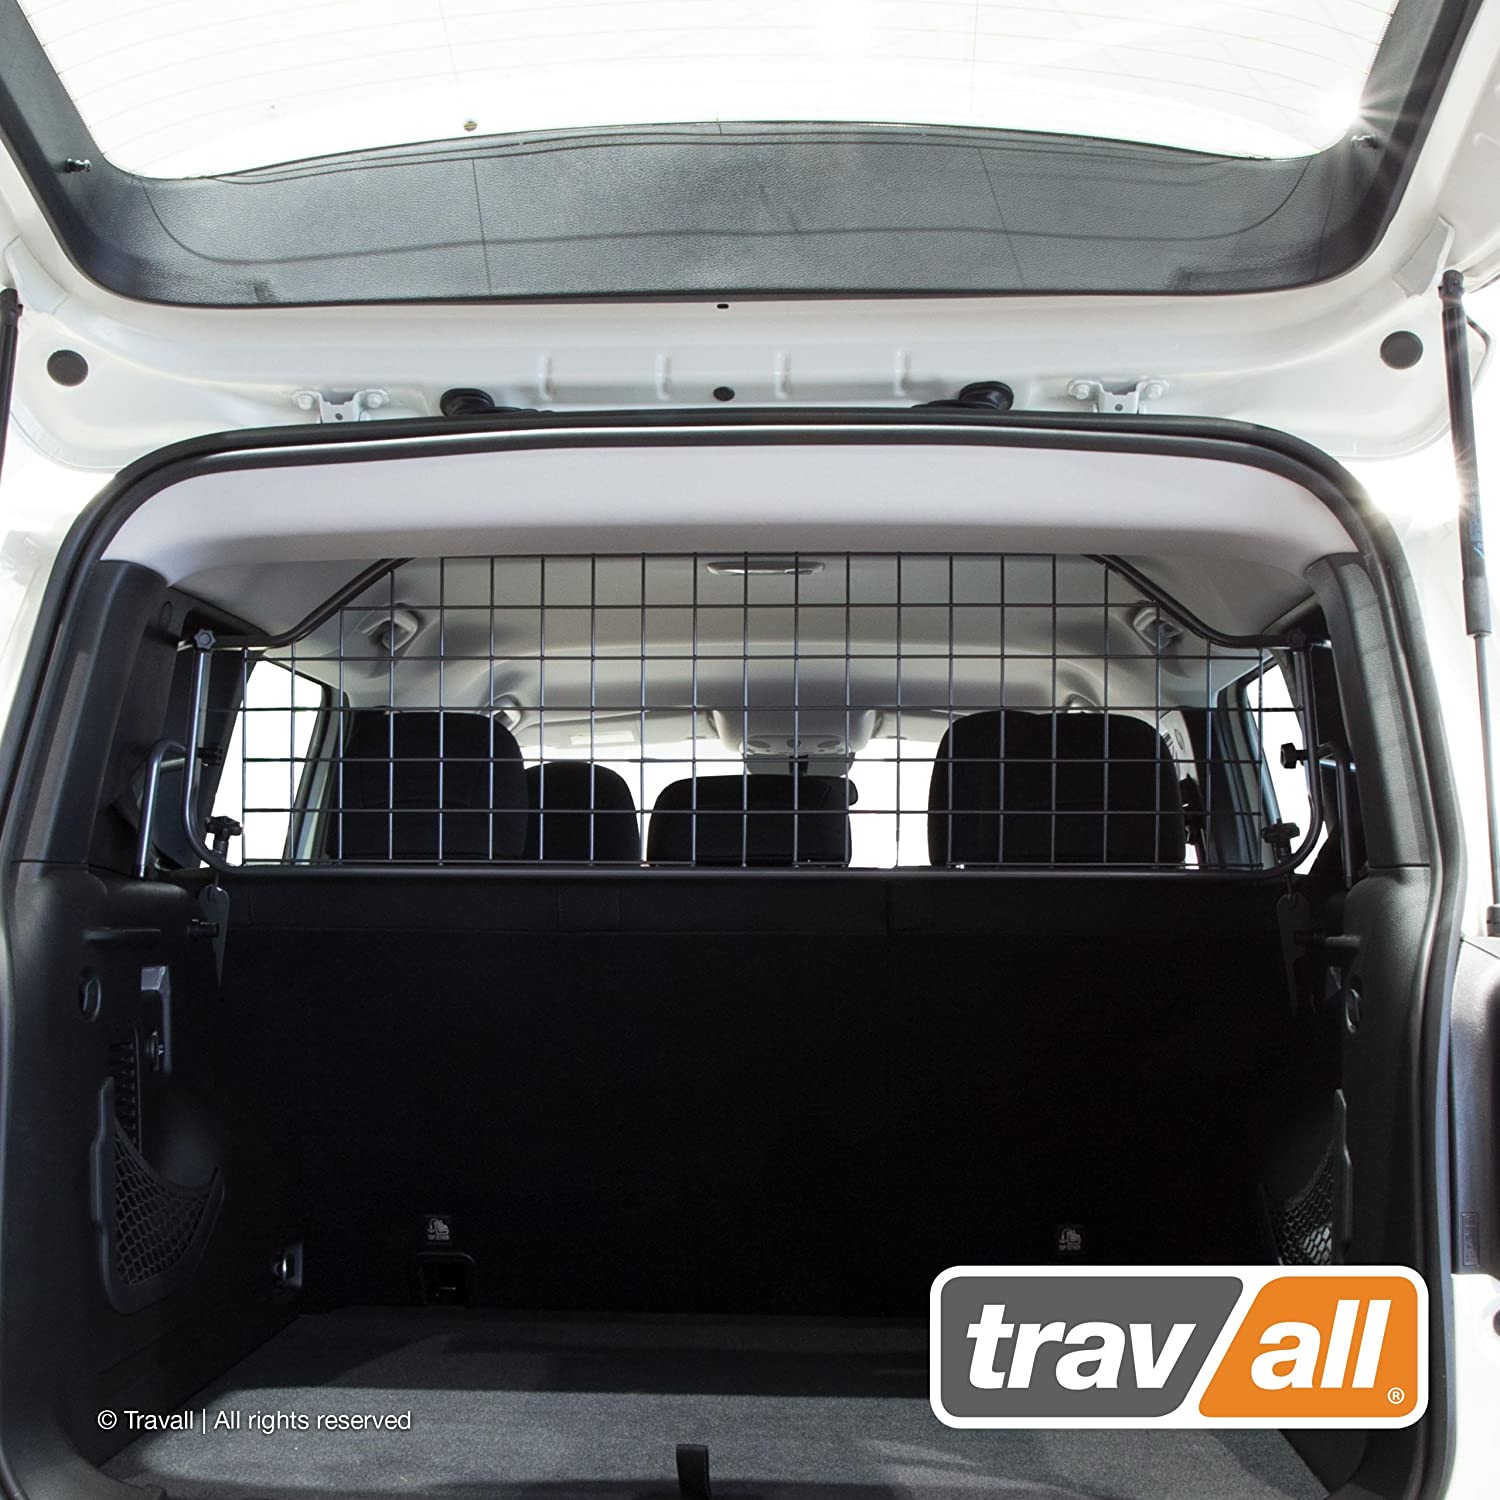 Travall Guard Compatible with Jeep Renegade Without Sunroof 2014-Current TDG1470 – Rattle-Free Steel Pet Barrier